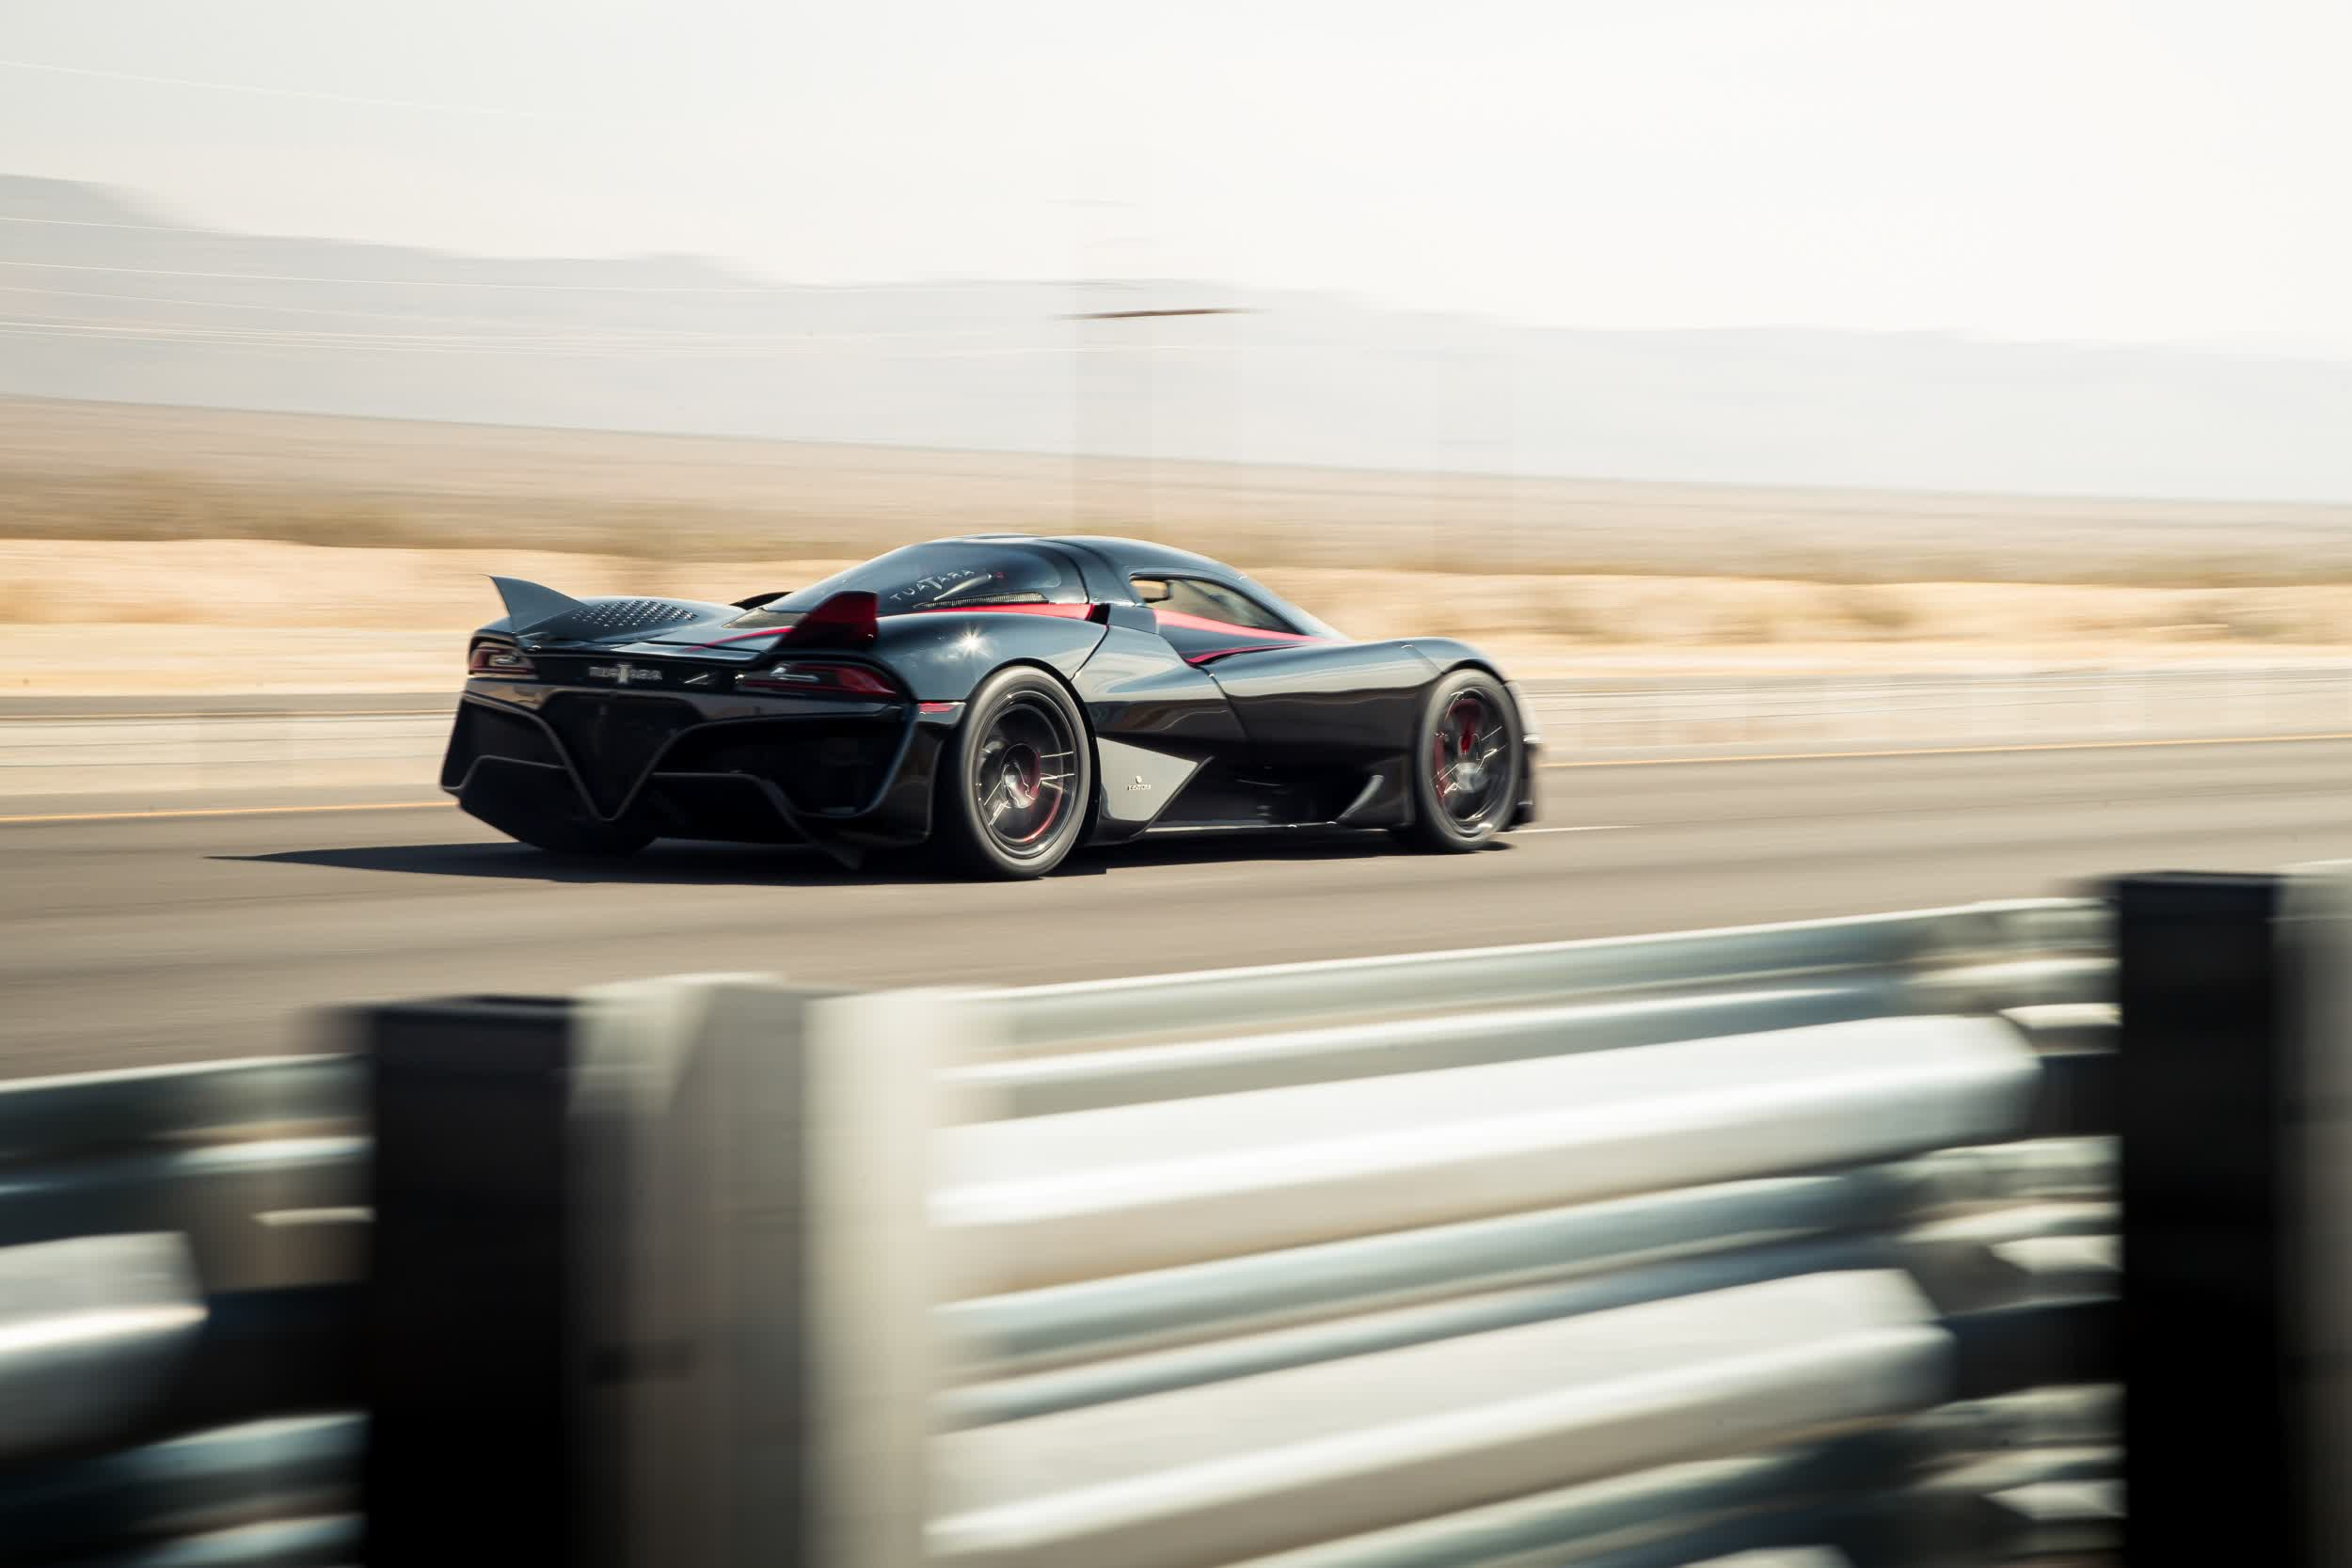 SSC clears the air, confirms its Tuatara did not break 300 MPH barrier during controversial runs